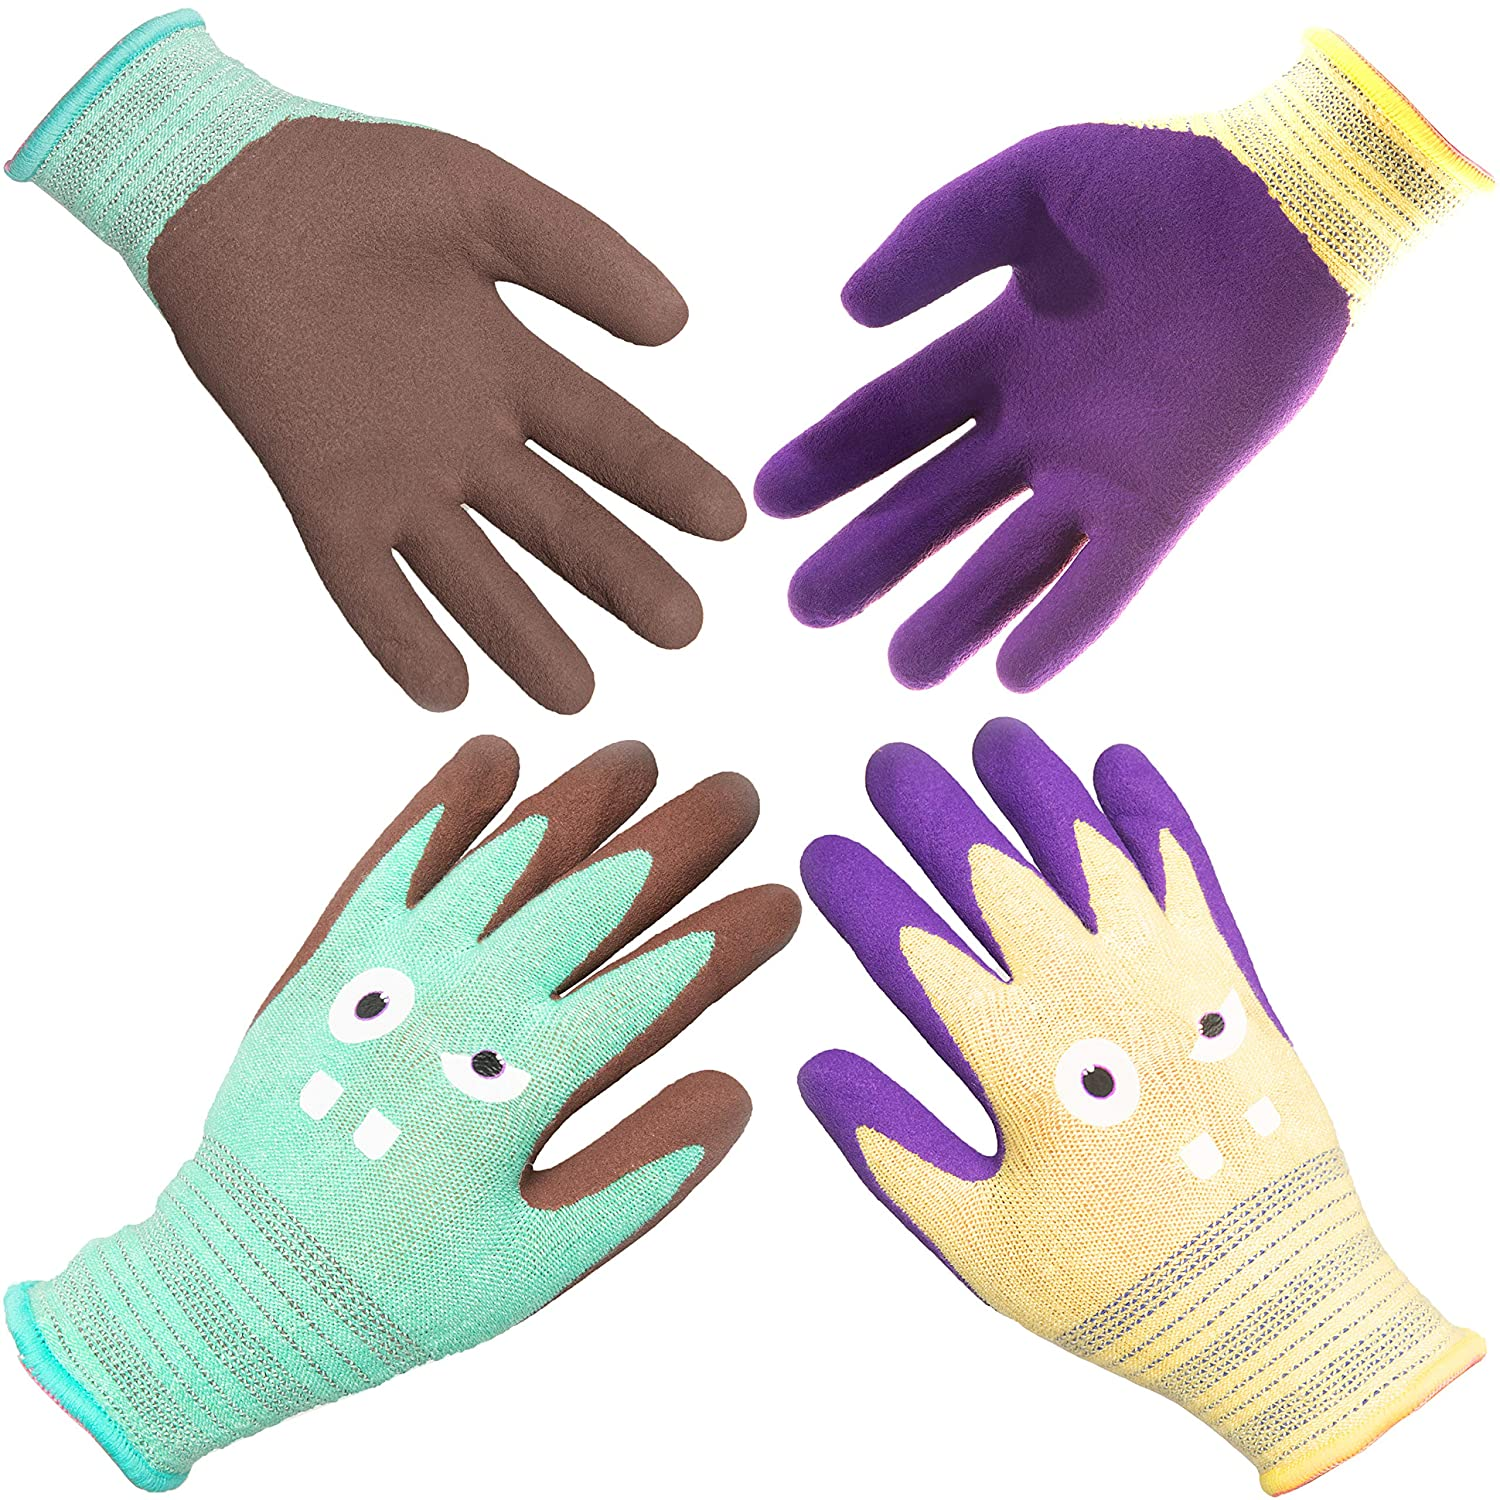 COOLJOB Kids Working Gloves, Kids Gardening Gloves, Kids Ages 3-5, Assorted Colors, 2 Pairs, Small Size